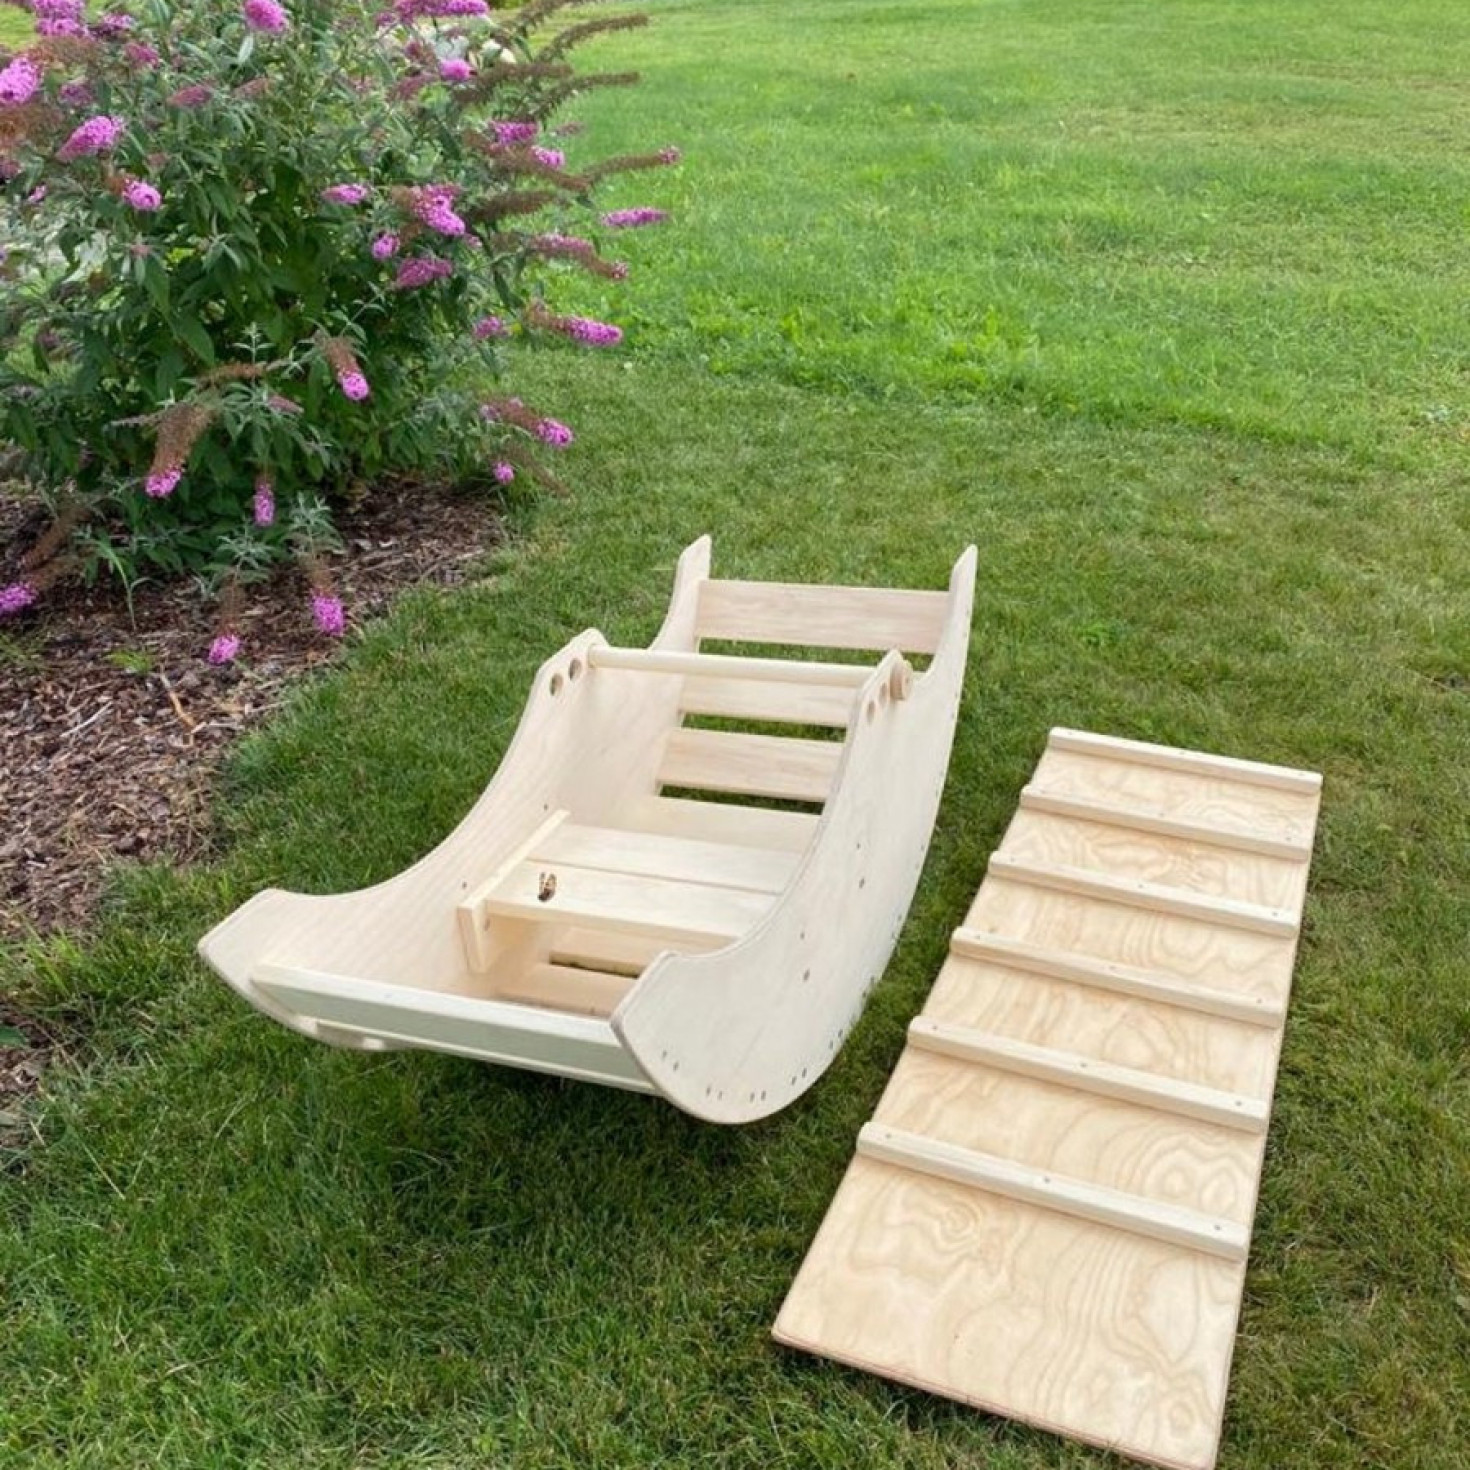 A ladder board for a wooden rocker toy